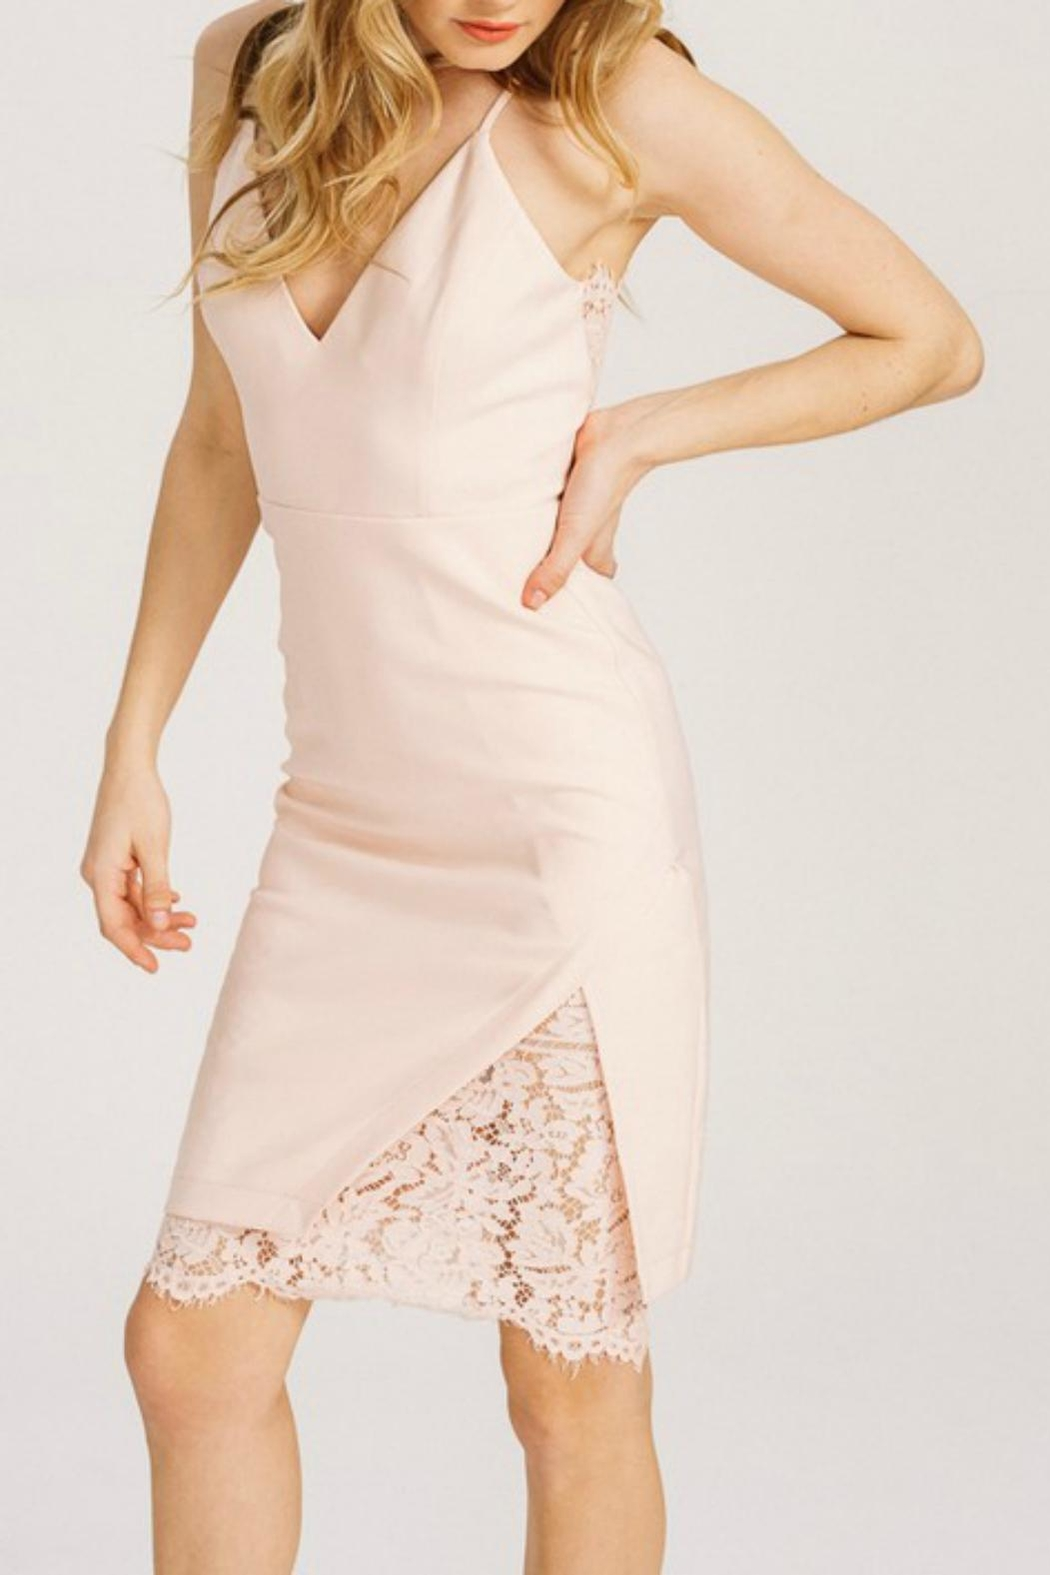 Pretty Little Things Lace Peekaboo Dress - Front Cropped Image